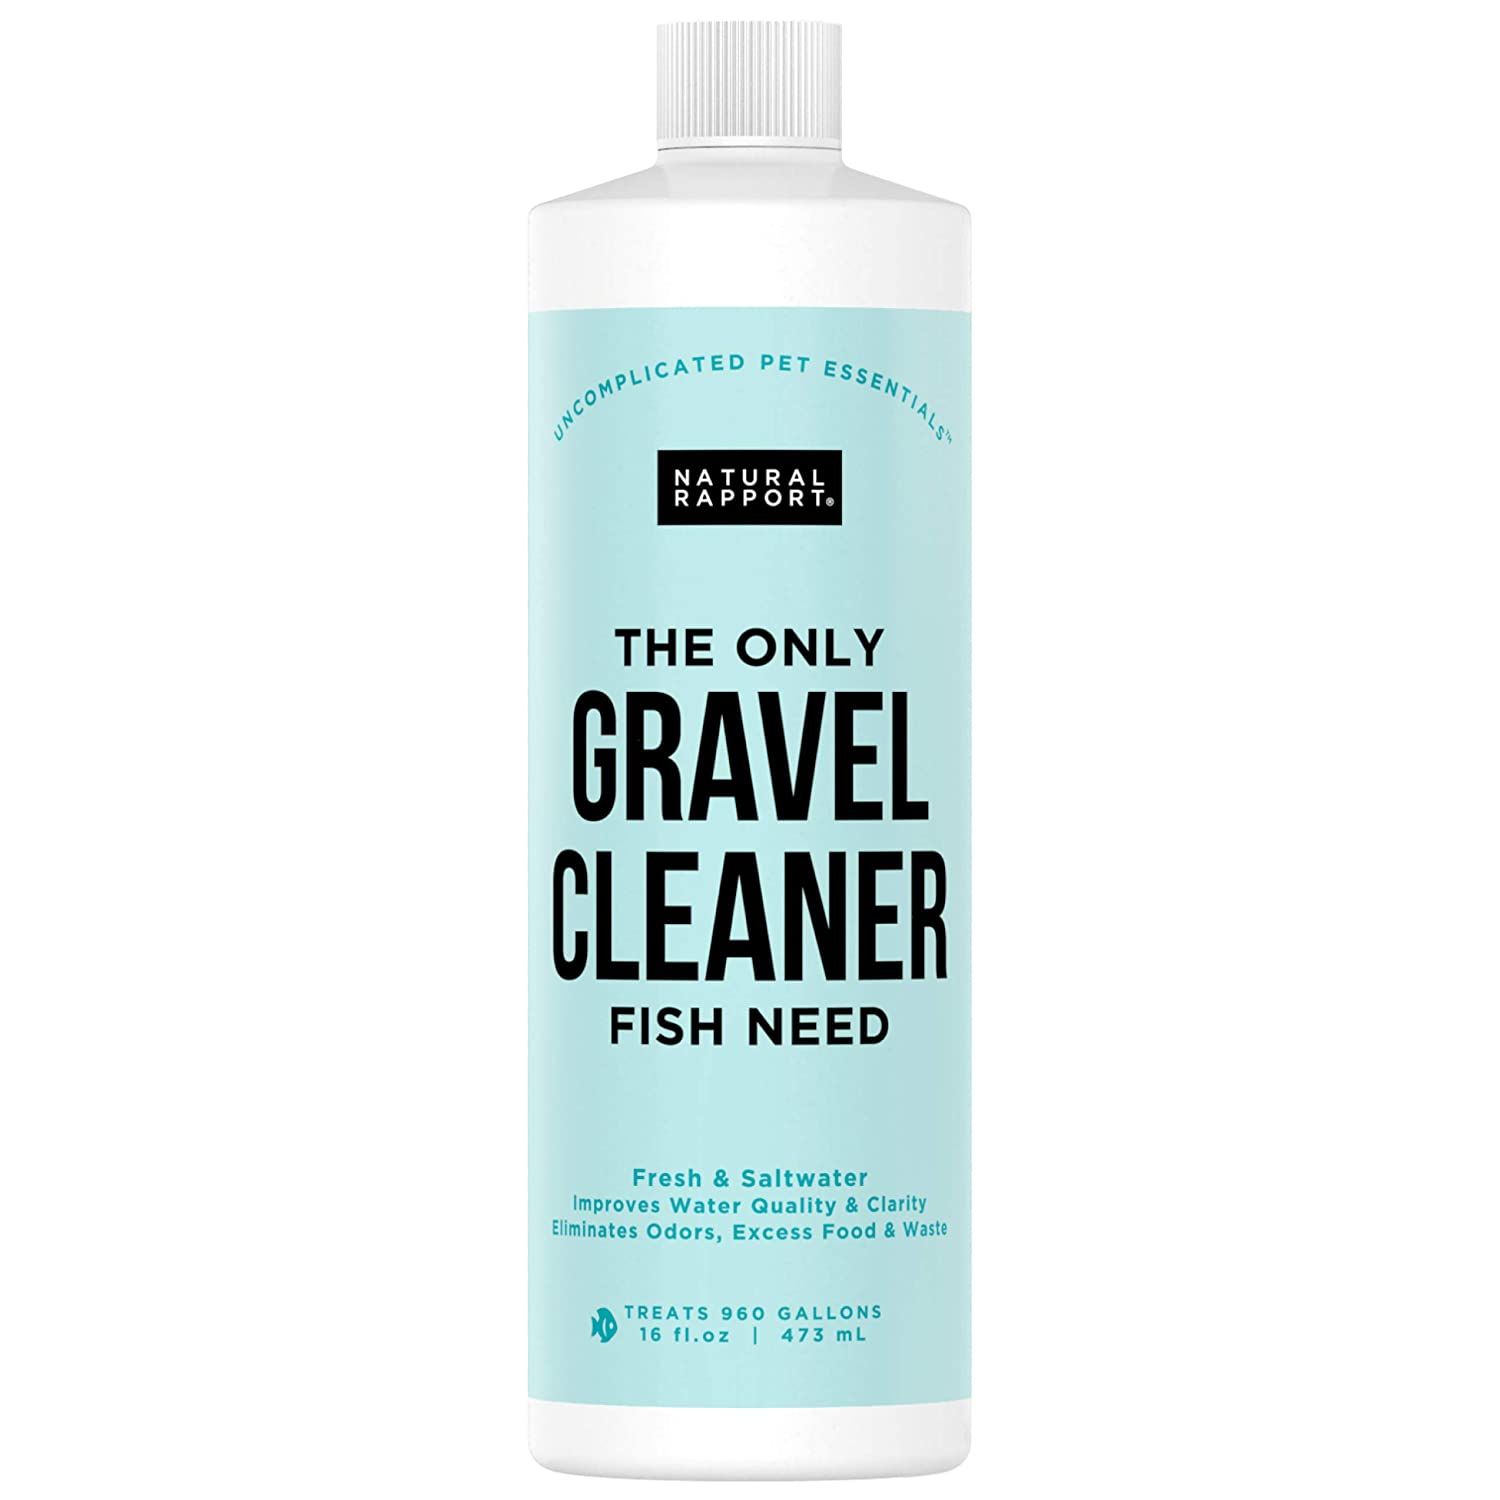 Natural Rapport Aquarium Gravel Cleaner - The Only Gravel Cleaner Fish Need - Professional Aquarium Gravel Cleaner to Naturally Maintain a Healthier Tank, Reducing Fish Waste & Toxins (16 fl oz)